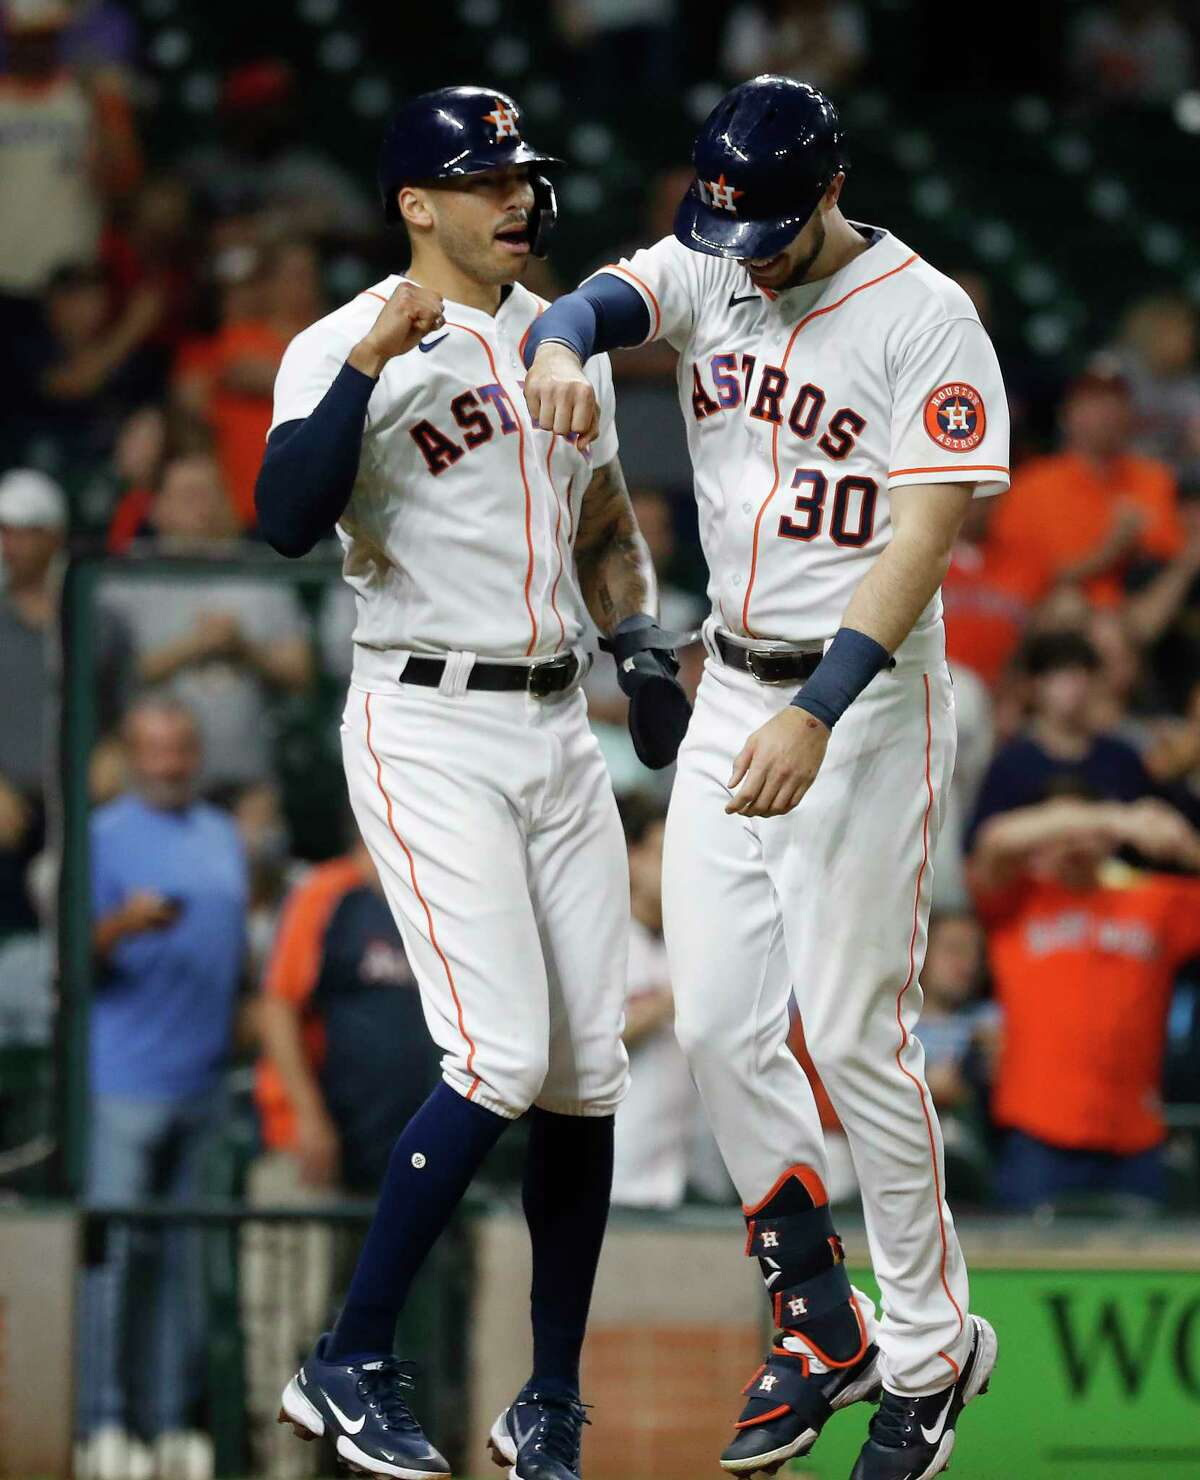 Houston Astros right fielder Kyle Tucker (30) celebrates his home run off of Los Angeles Angels starting pitcher Andrew Heaney with Carlos Correa during the sixth inning of an MLB baseball game at Minute Maid Park, Wednesday, May 12, 2021, in Houston.